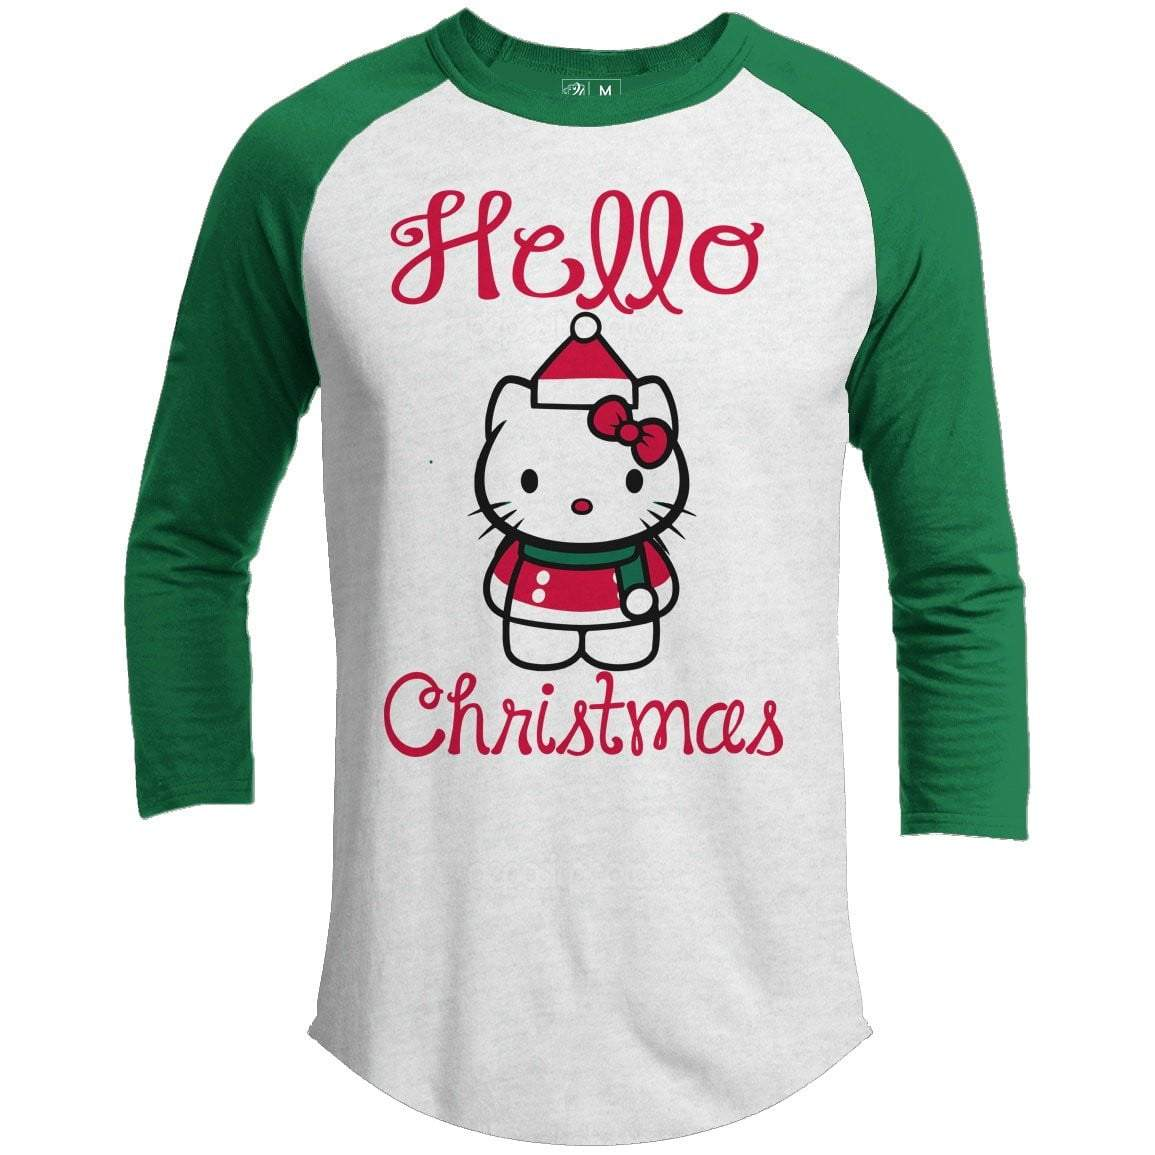 HELLO CHRISTMAS Premium Youth Christmas Raglan